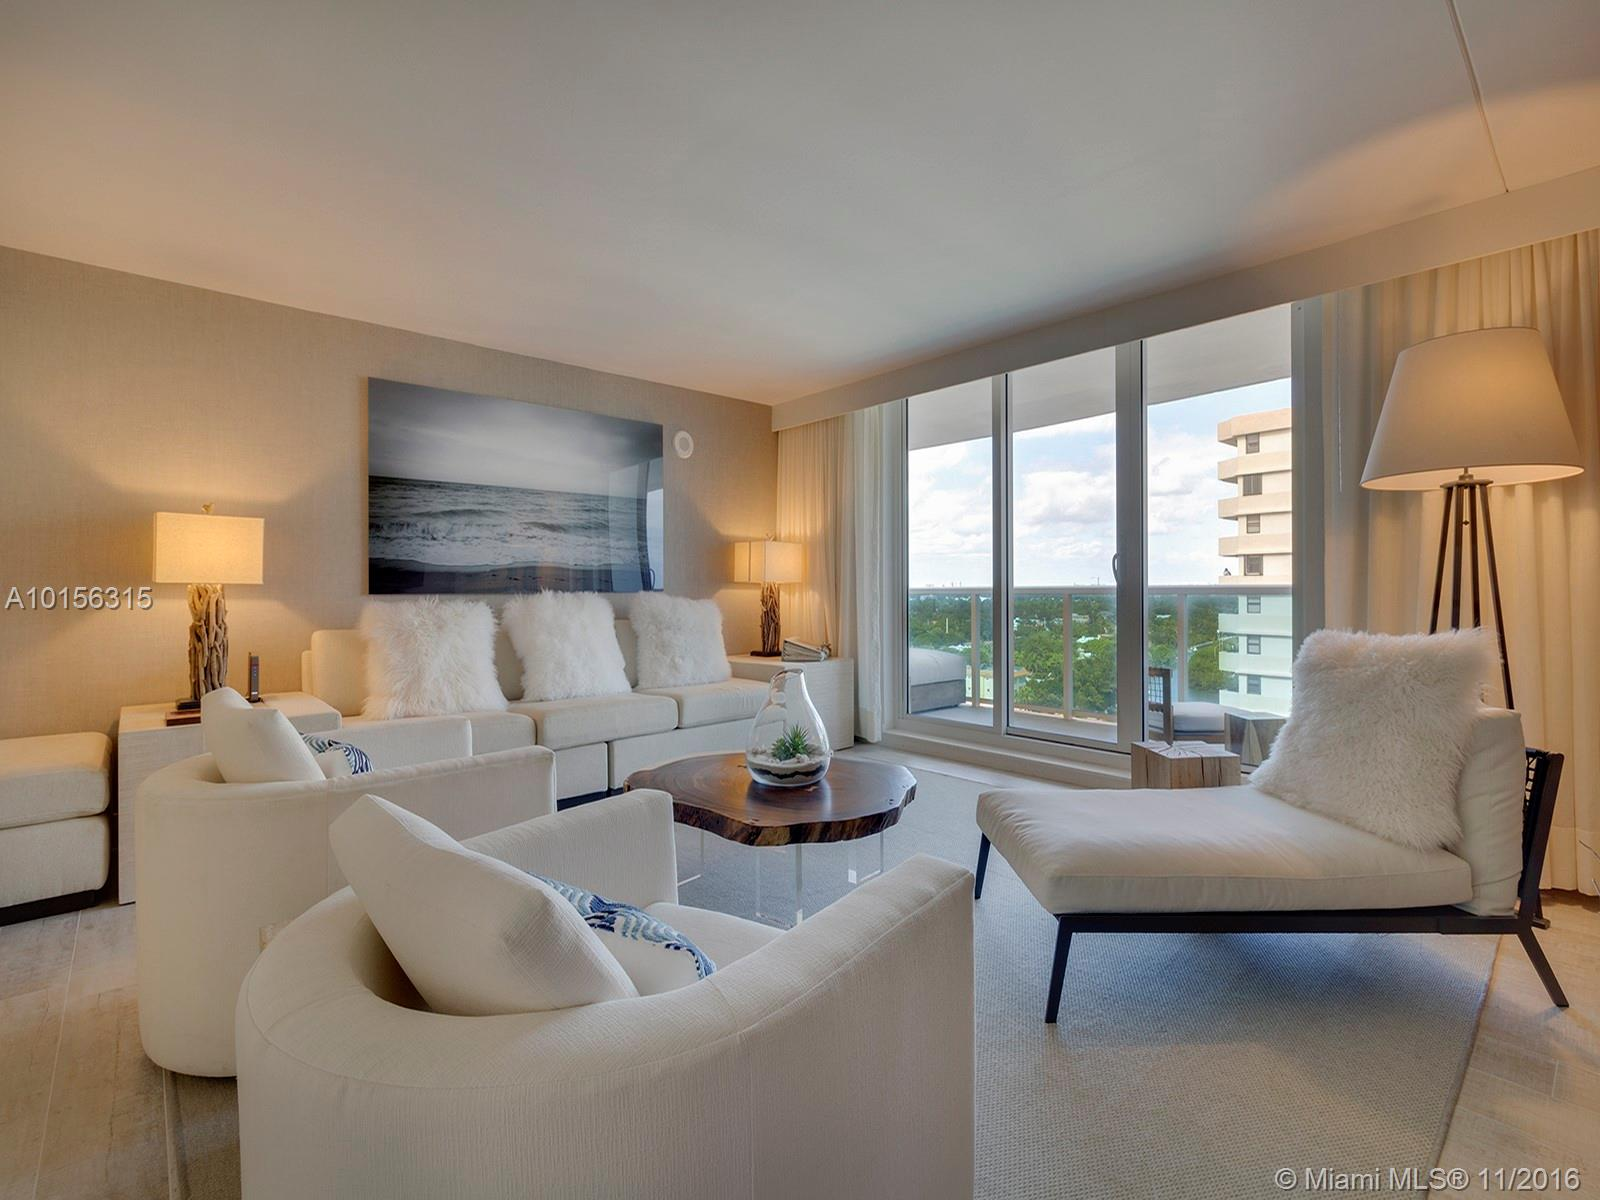 Incredibly spacious 3 bed/3 bath apartment beautifully decorated by world renowned Debora Aguiar. Located at the hottest destination in South Beach:1 Hotel & Homes, the only green hotel in M. Beach. The 1 sits directly on the ocean & is centered in the heart of South Beach. Enjoy any one of 4 swimming pools, including a rooftop pool with panoramic views of the ocean and Miami City skyline, Bamford Spa and 14,000 SF fitness center.